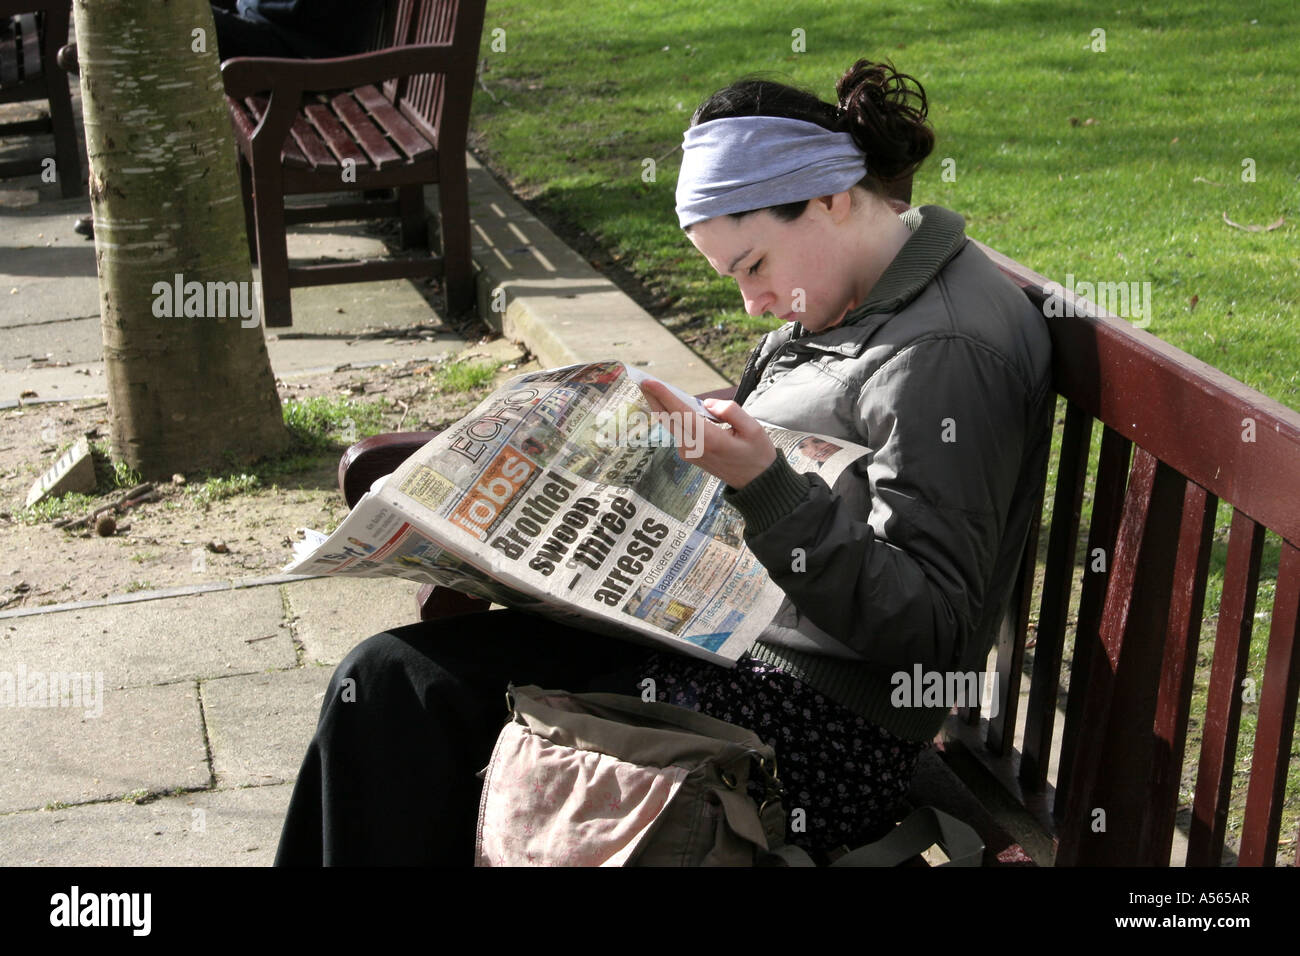 A woman reading the job section of a newspaper, sat on a park bench in the UK. - Stock Image